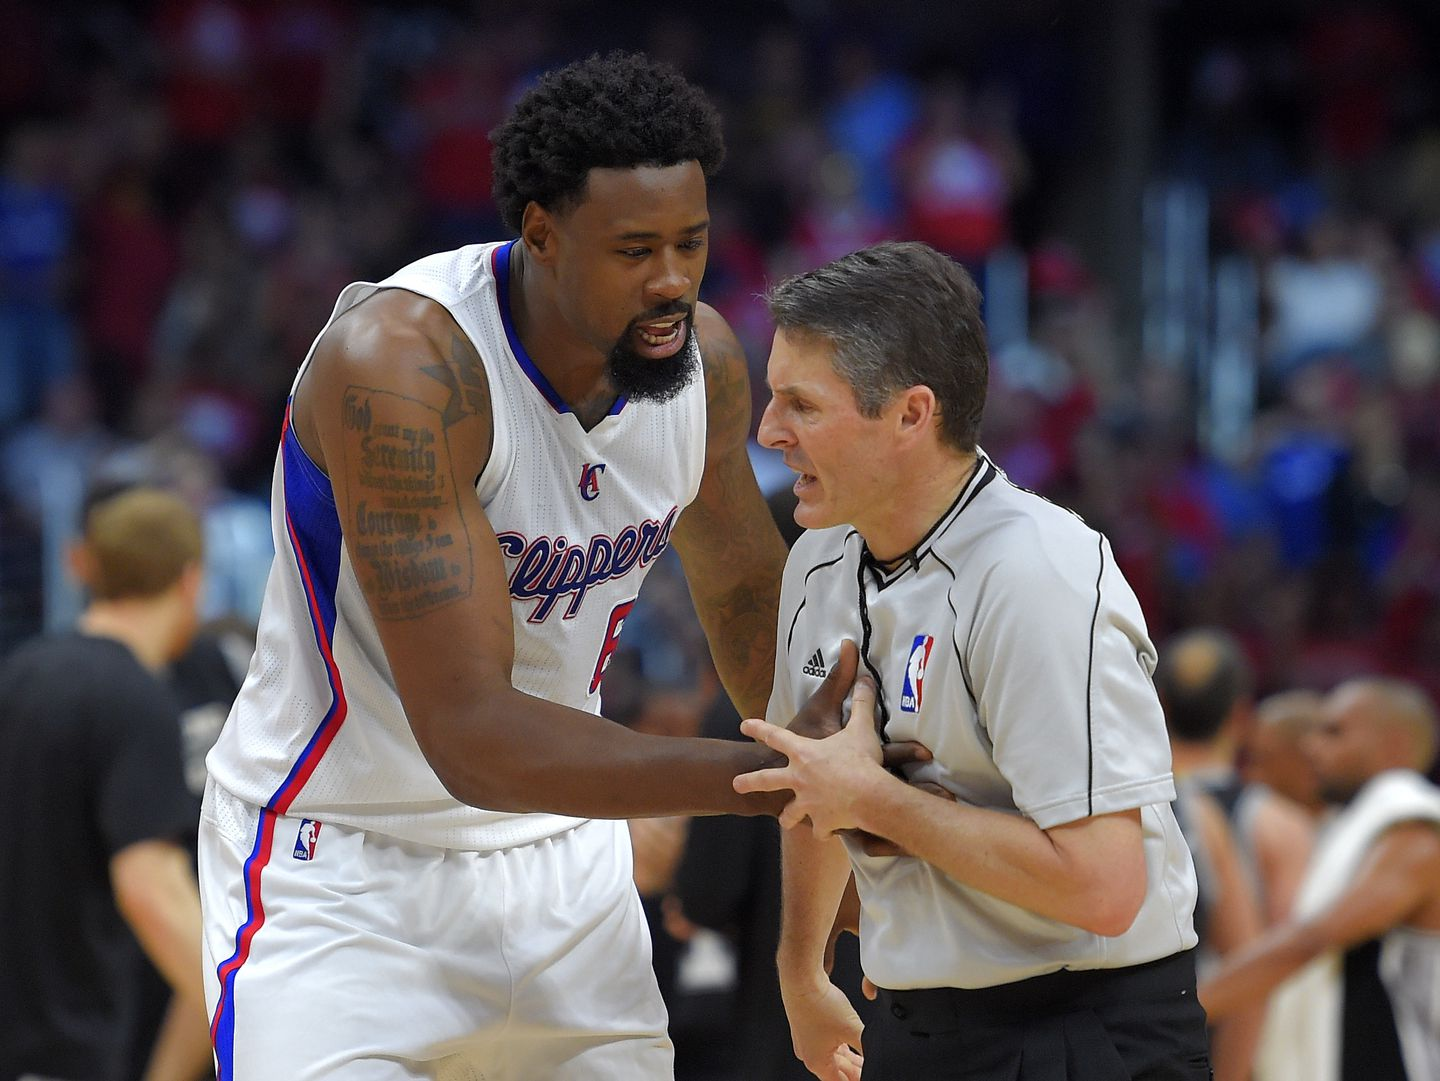 The Story Of Deandre Jordan Was Best Told By Twitter The